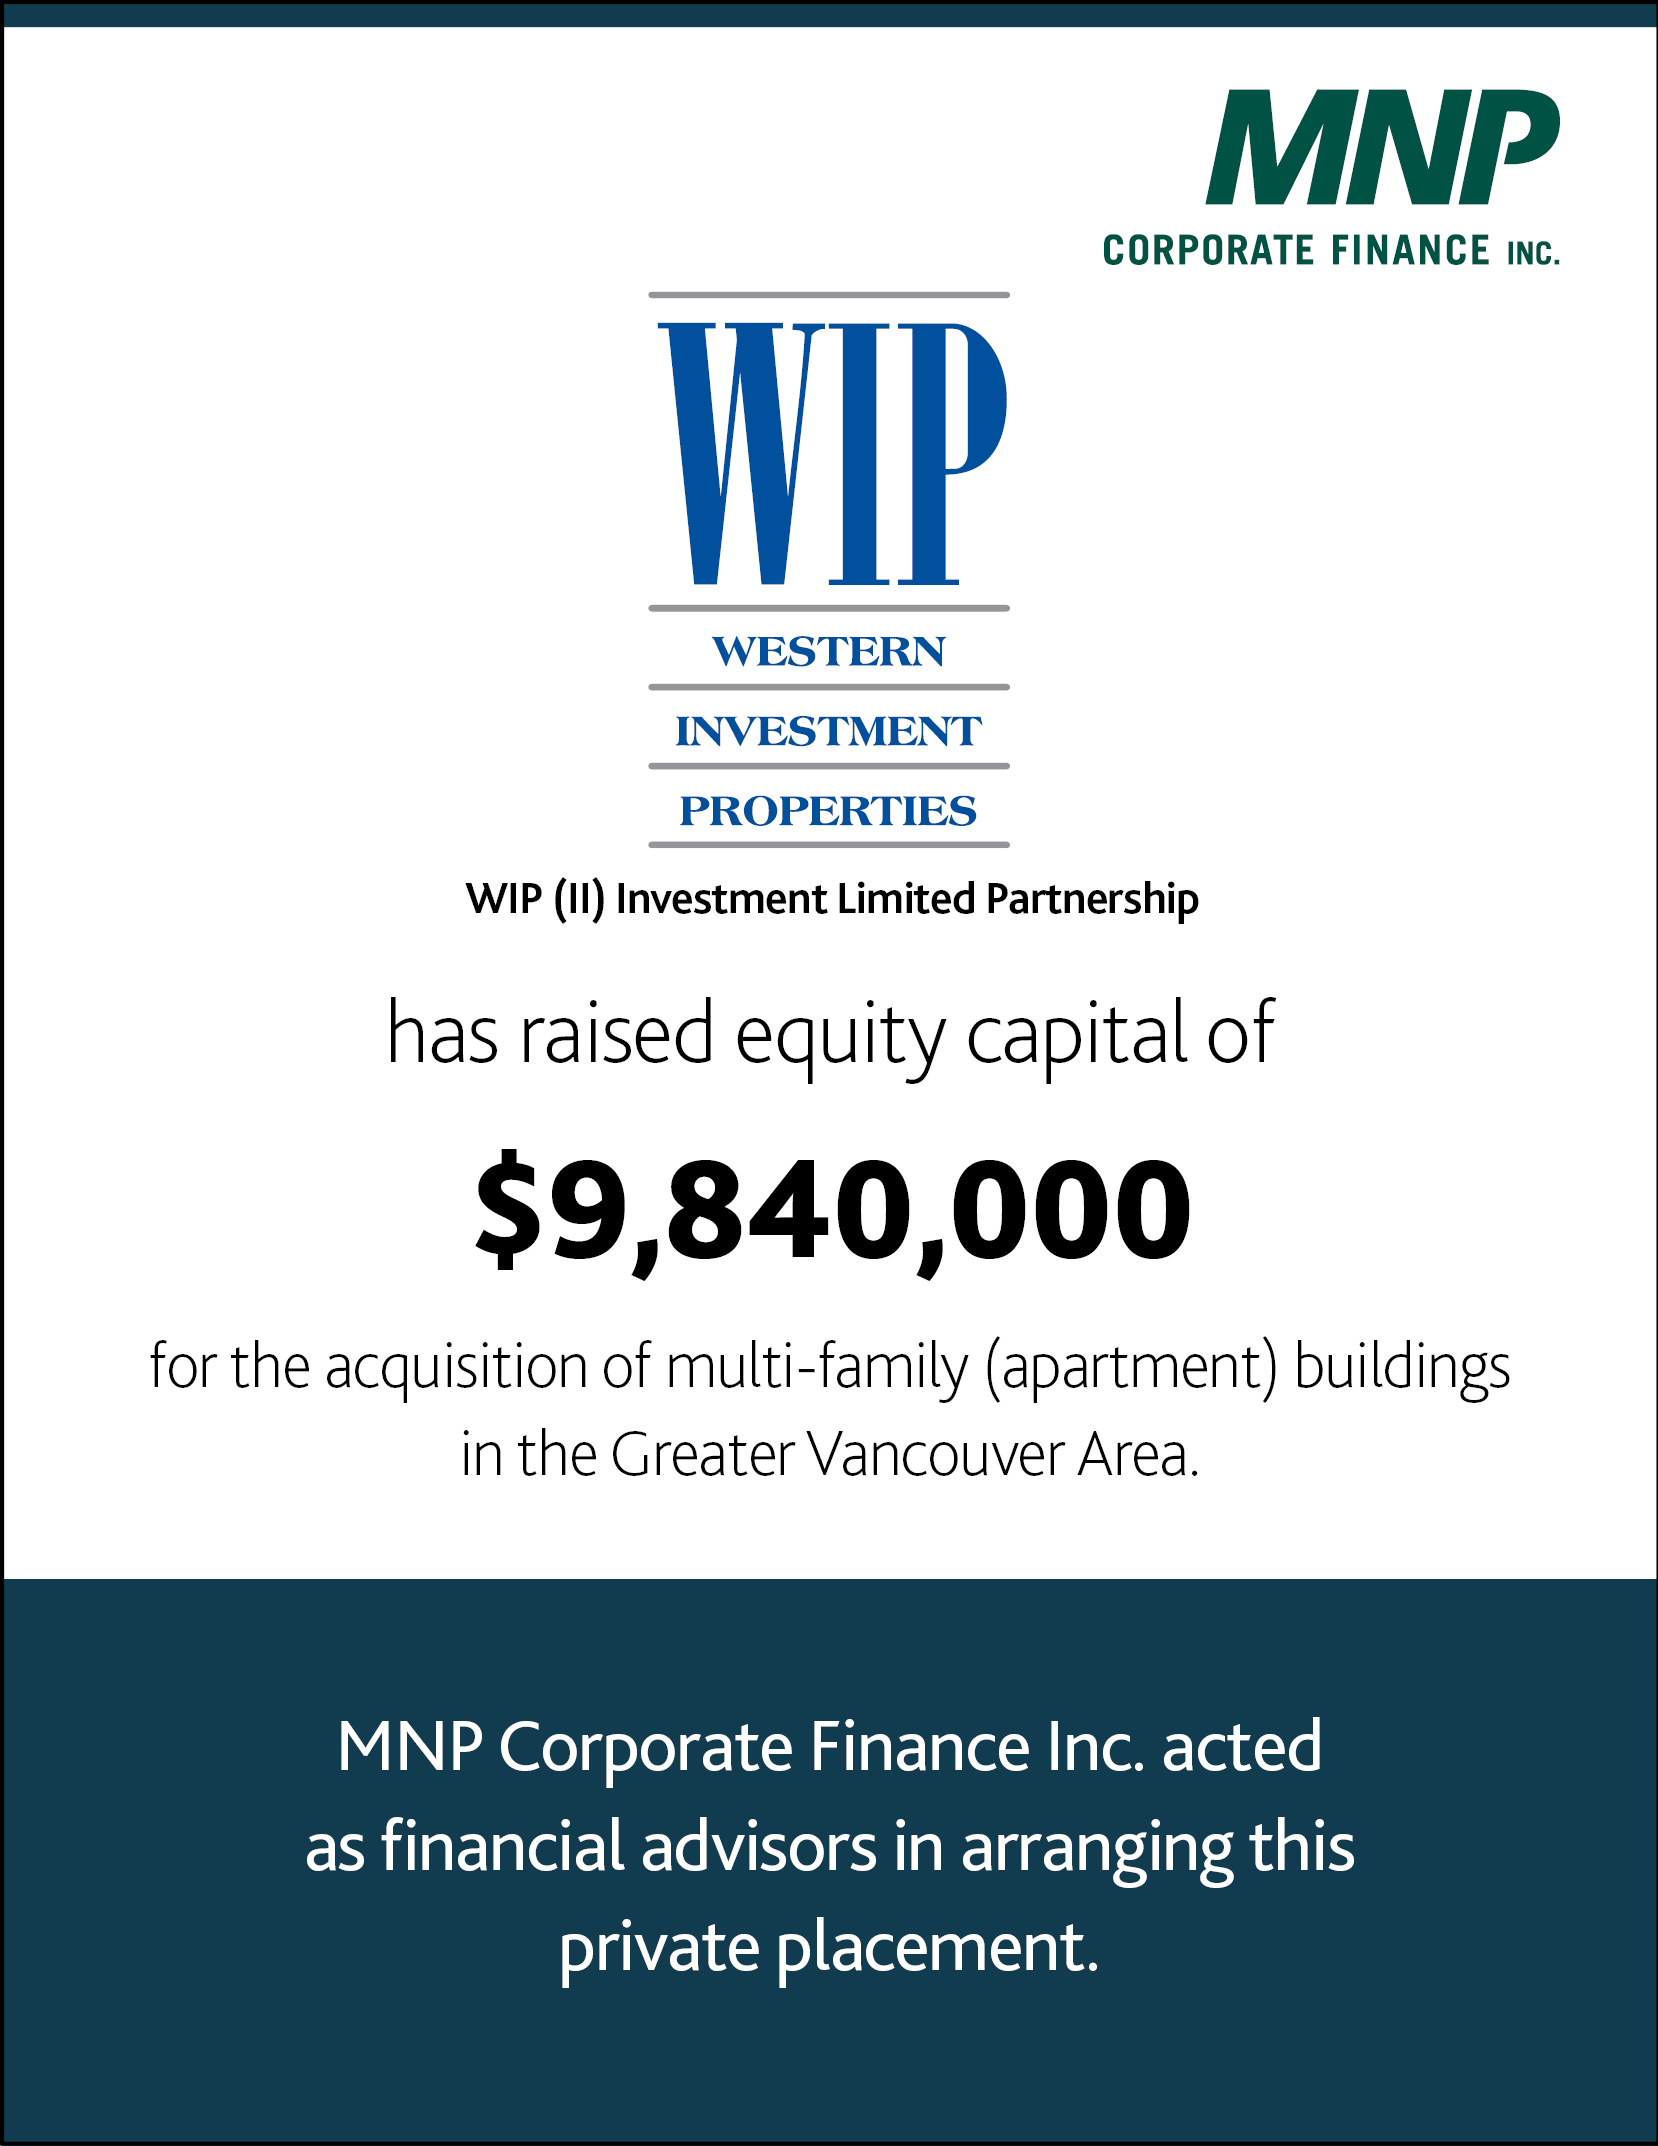 WIP (II) Investment LP has raised equity capital of $9,840,000 for the acquisition of multi-family (apartments) buildings in the Greater Vancouver Area.